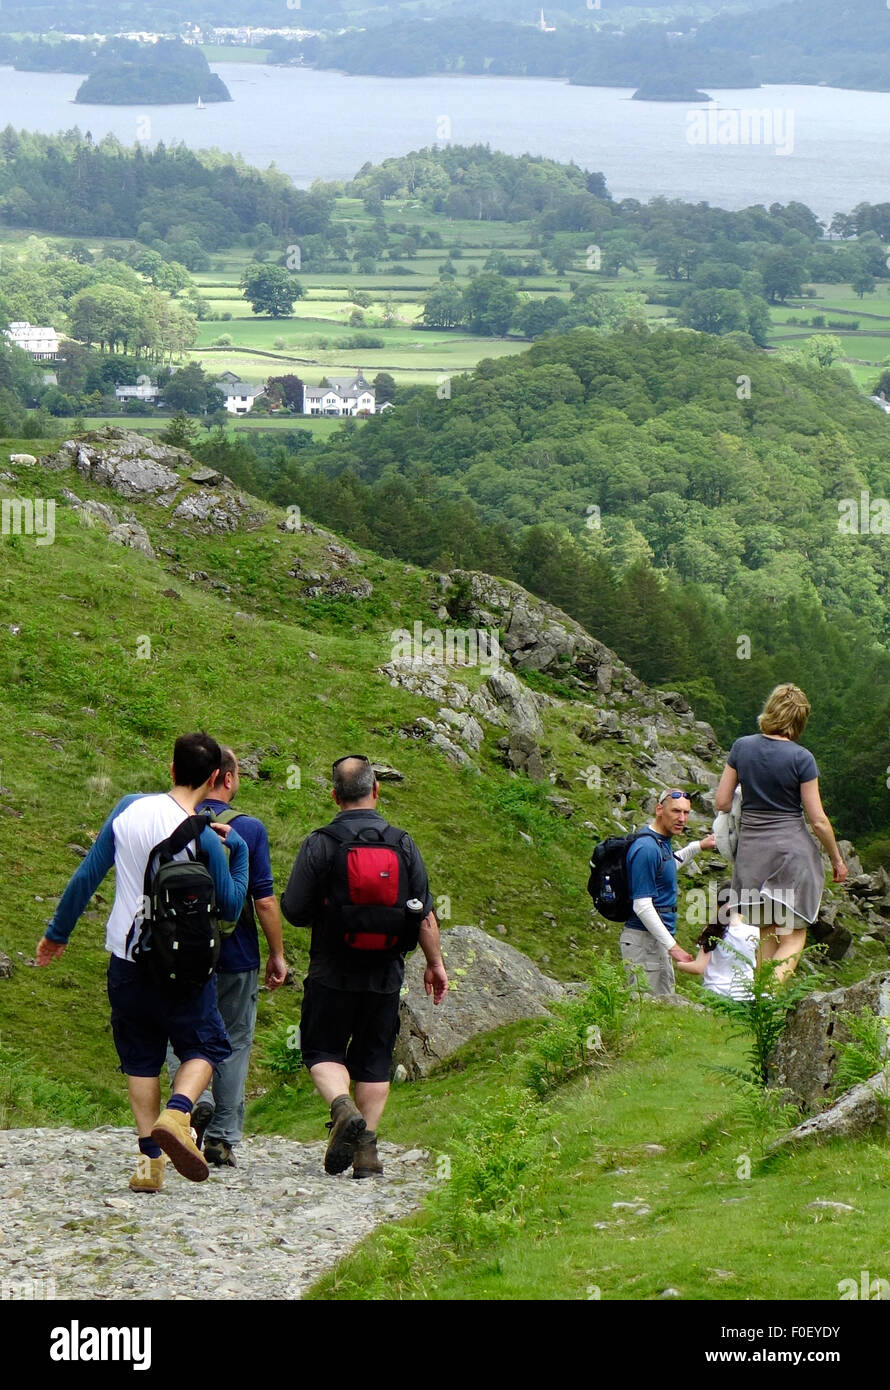 Walkers on the Allerdale Ramble, Borrowdale, Lake District National Park, Cumbria, England, UK - Stock Image